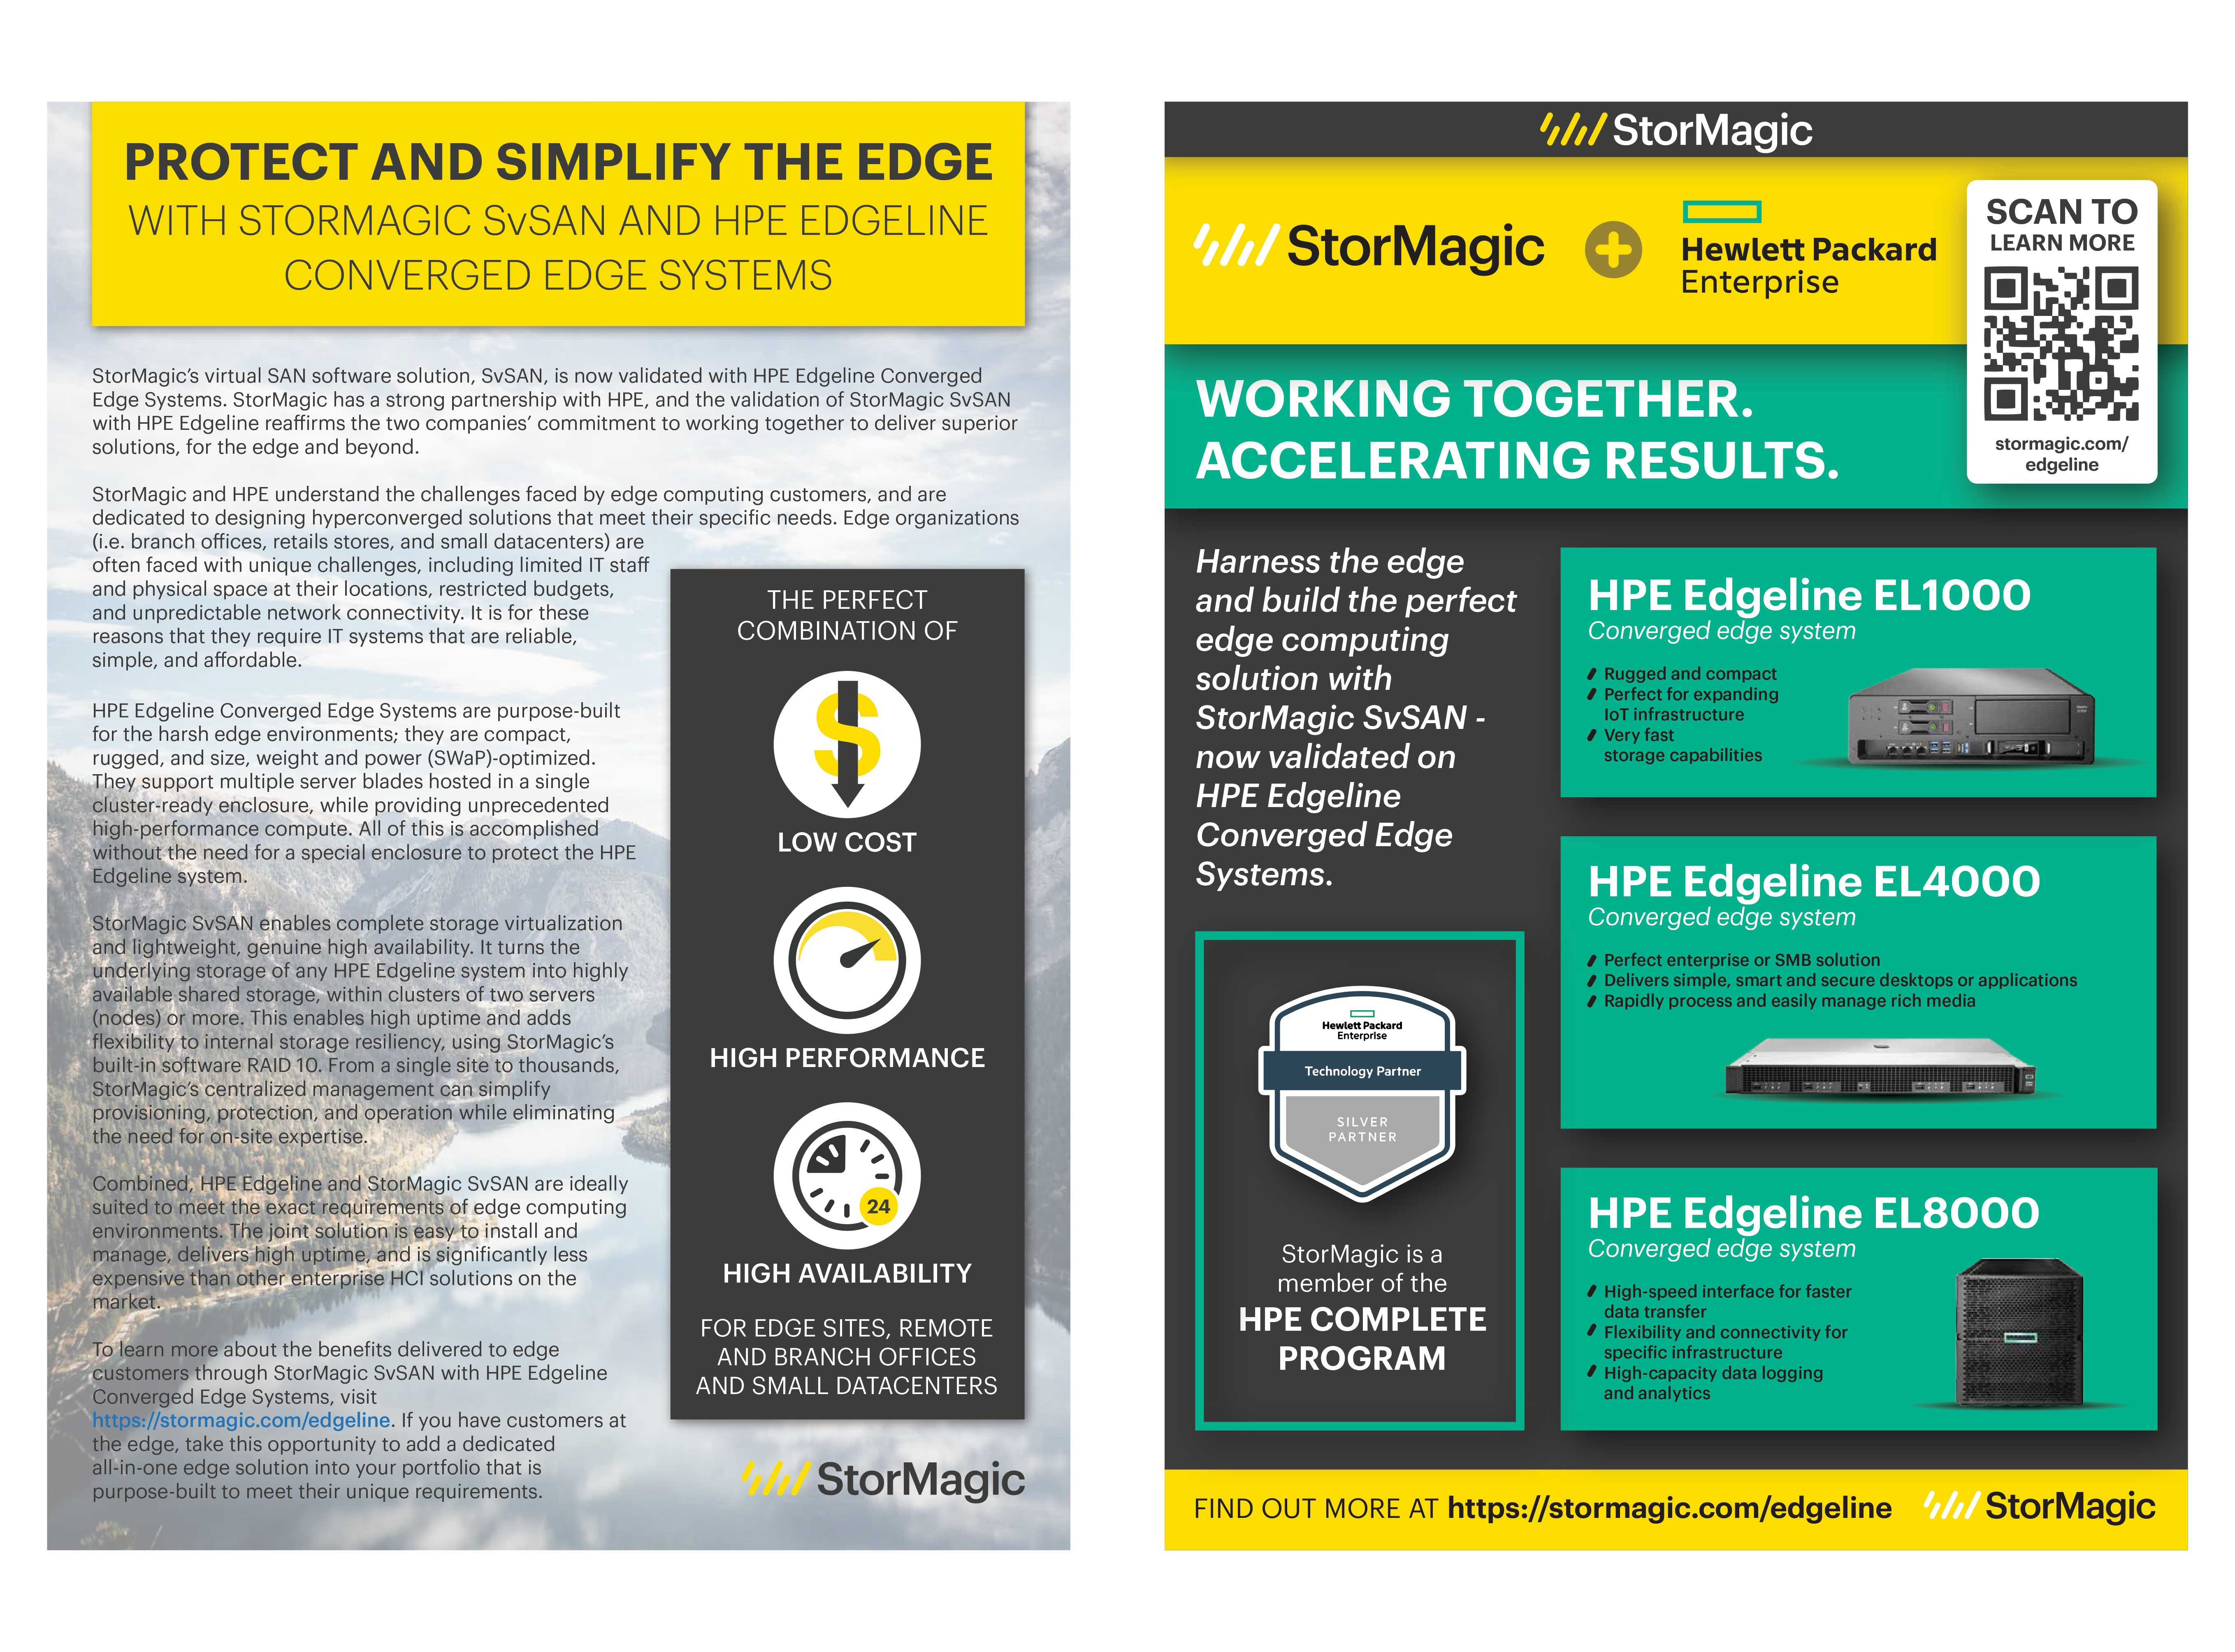 PROTECT AND SIMPLIFY THE EDGE WITH STORMAGIC SvSAN AND HPE EDGELINE CONVERGED EDGE SYSTEMS